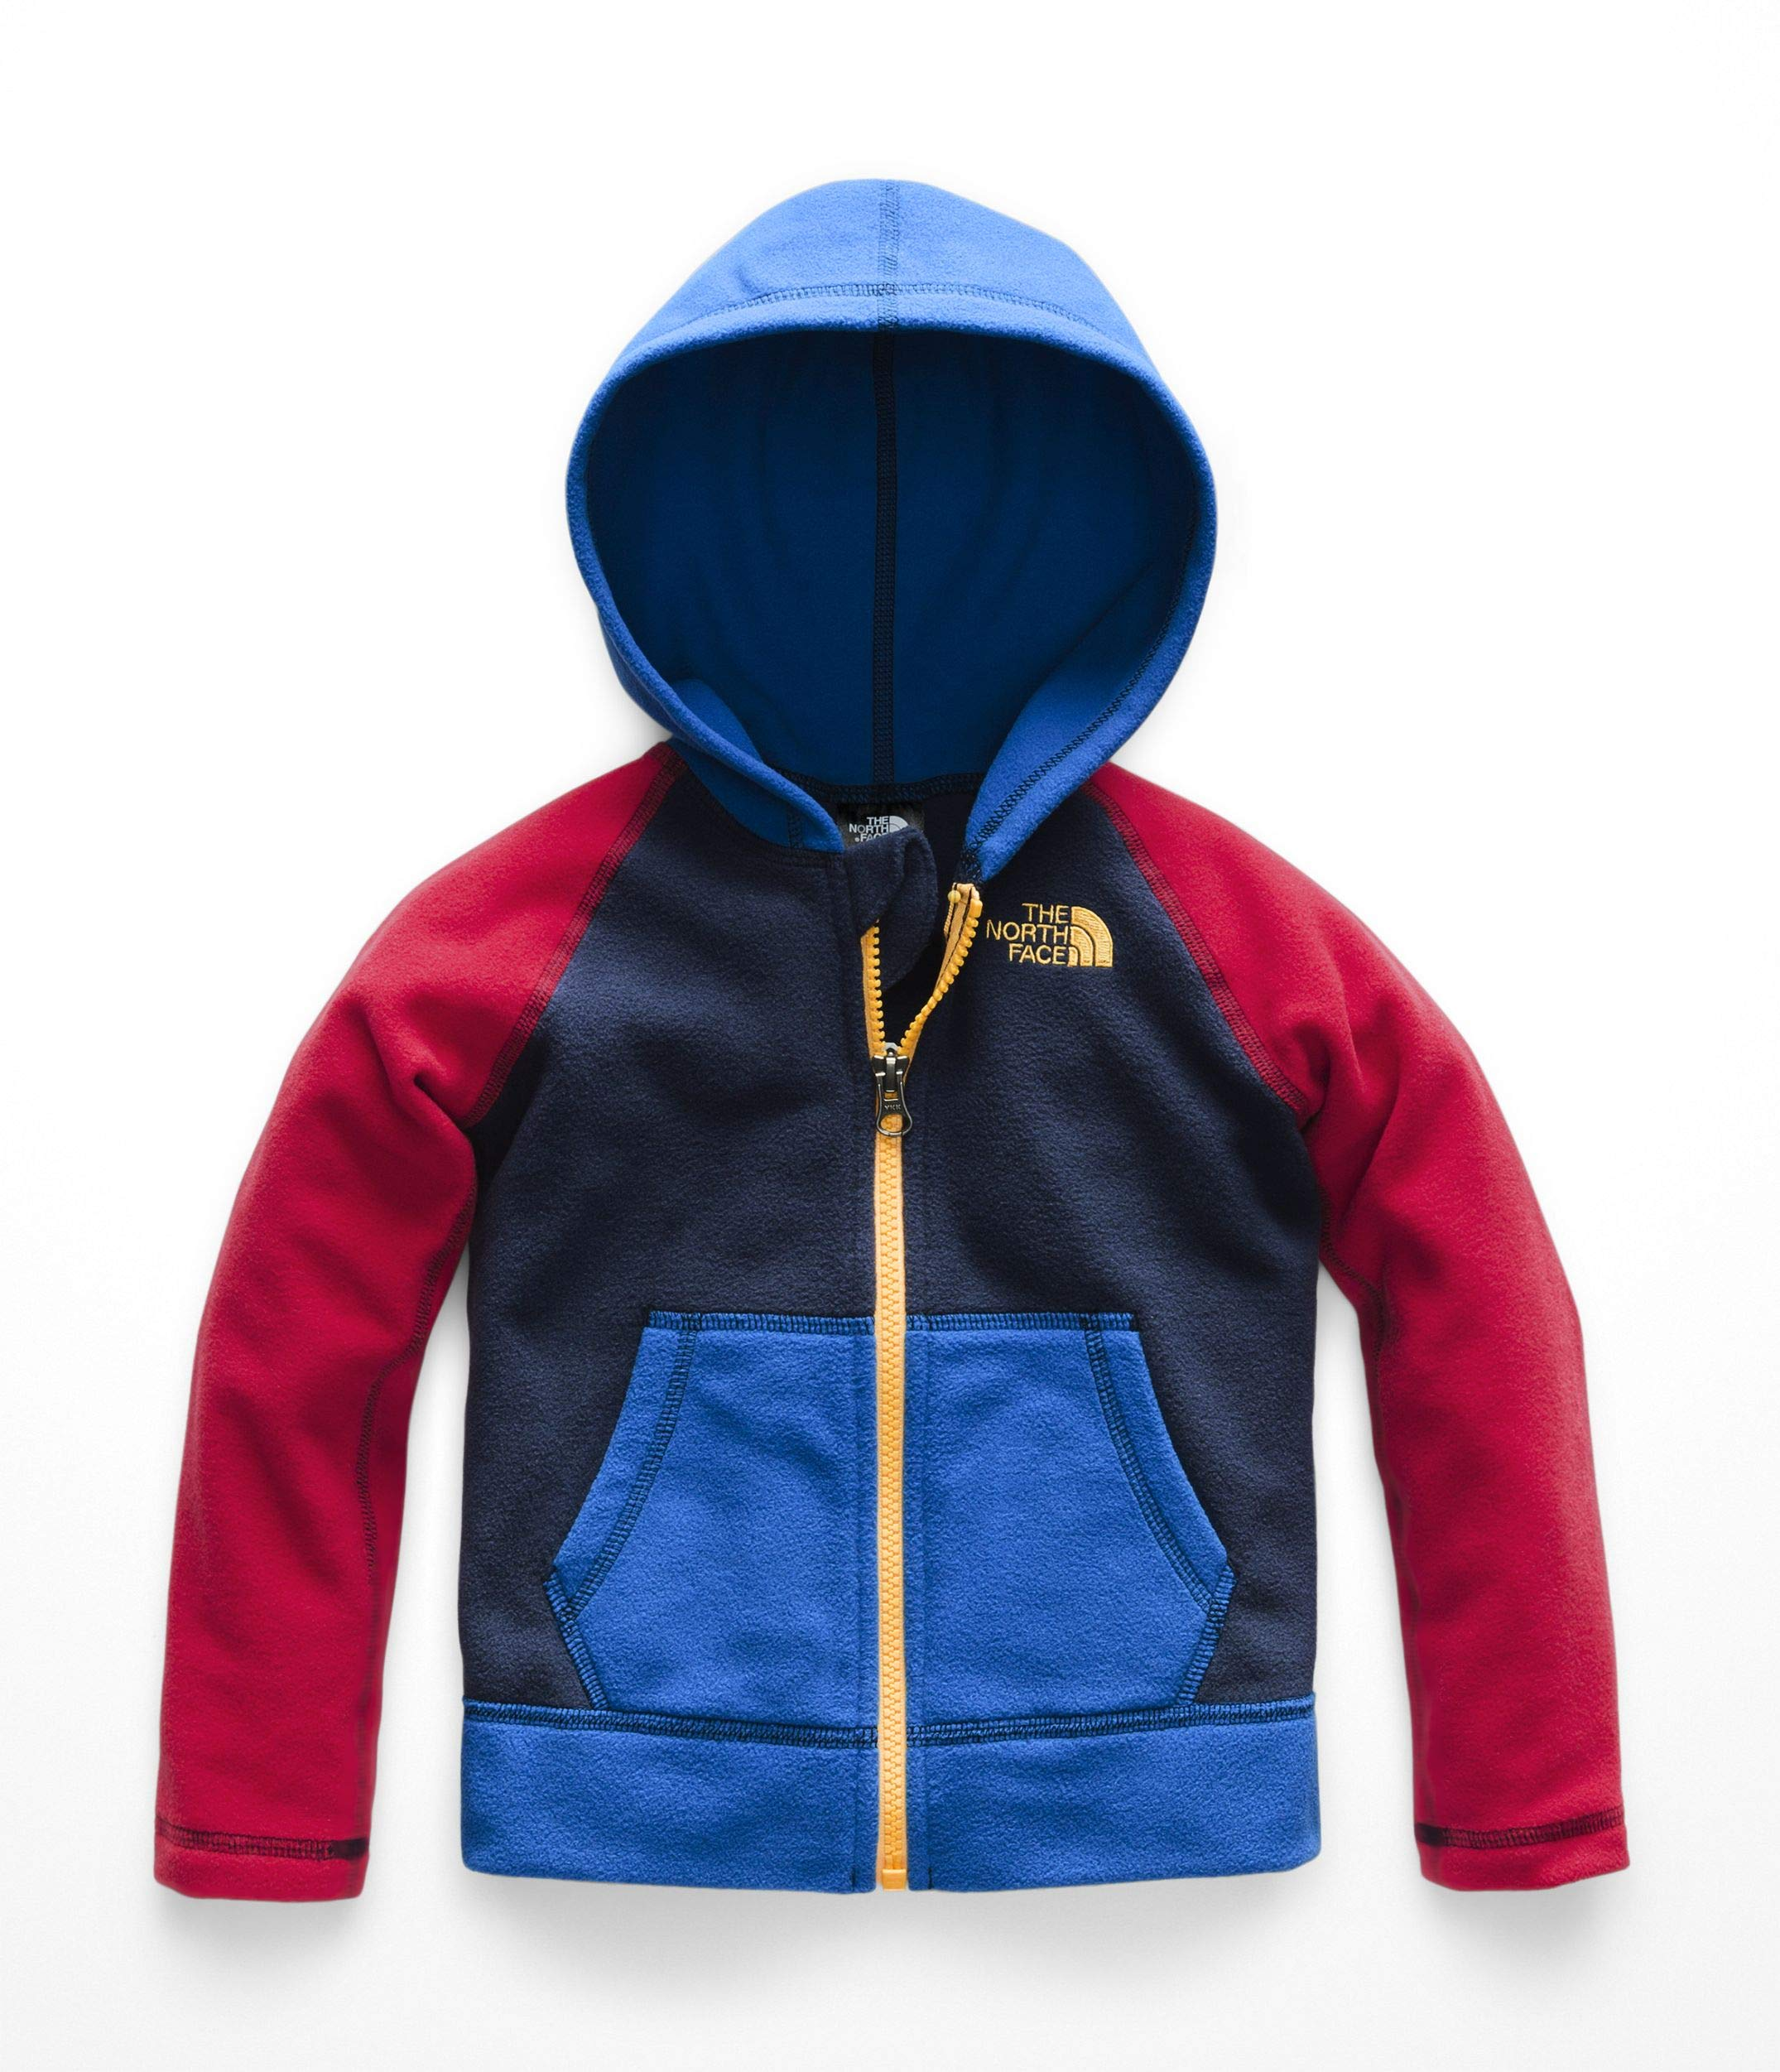 6627cc9fa Galleon - The North Face Toddler Glacier Full Zip Hoody - Cosmic ...